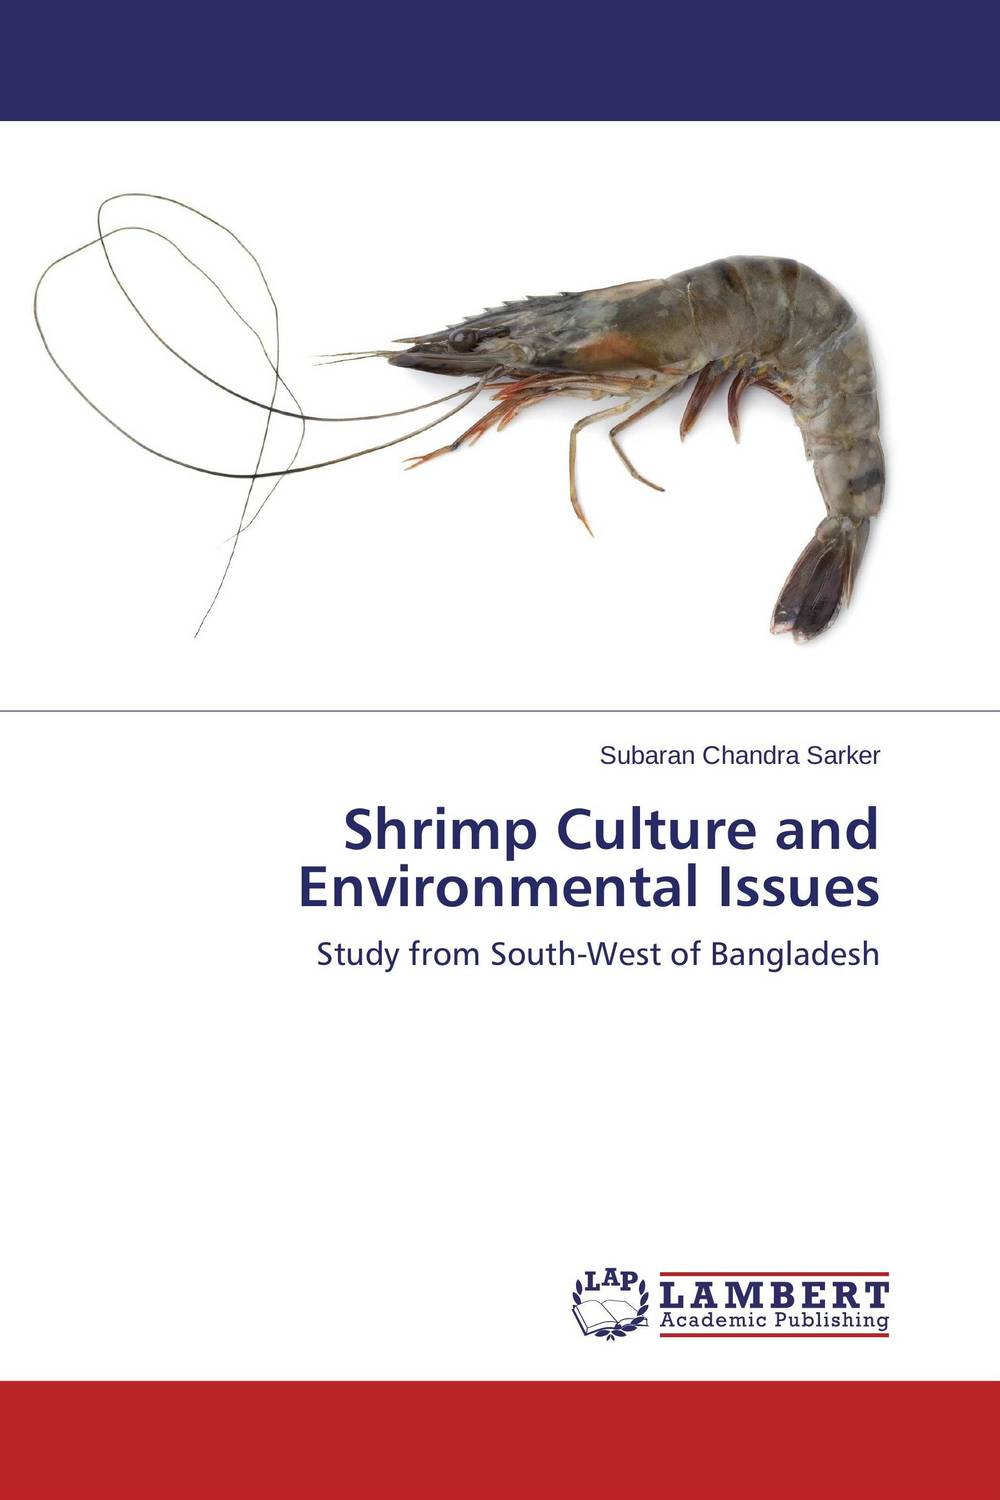 Shrimp Culture and Environmental Issues сысоев п сысоева л issues in us culture and society амер культура и общество